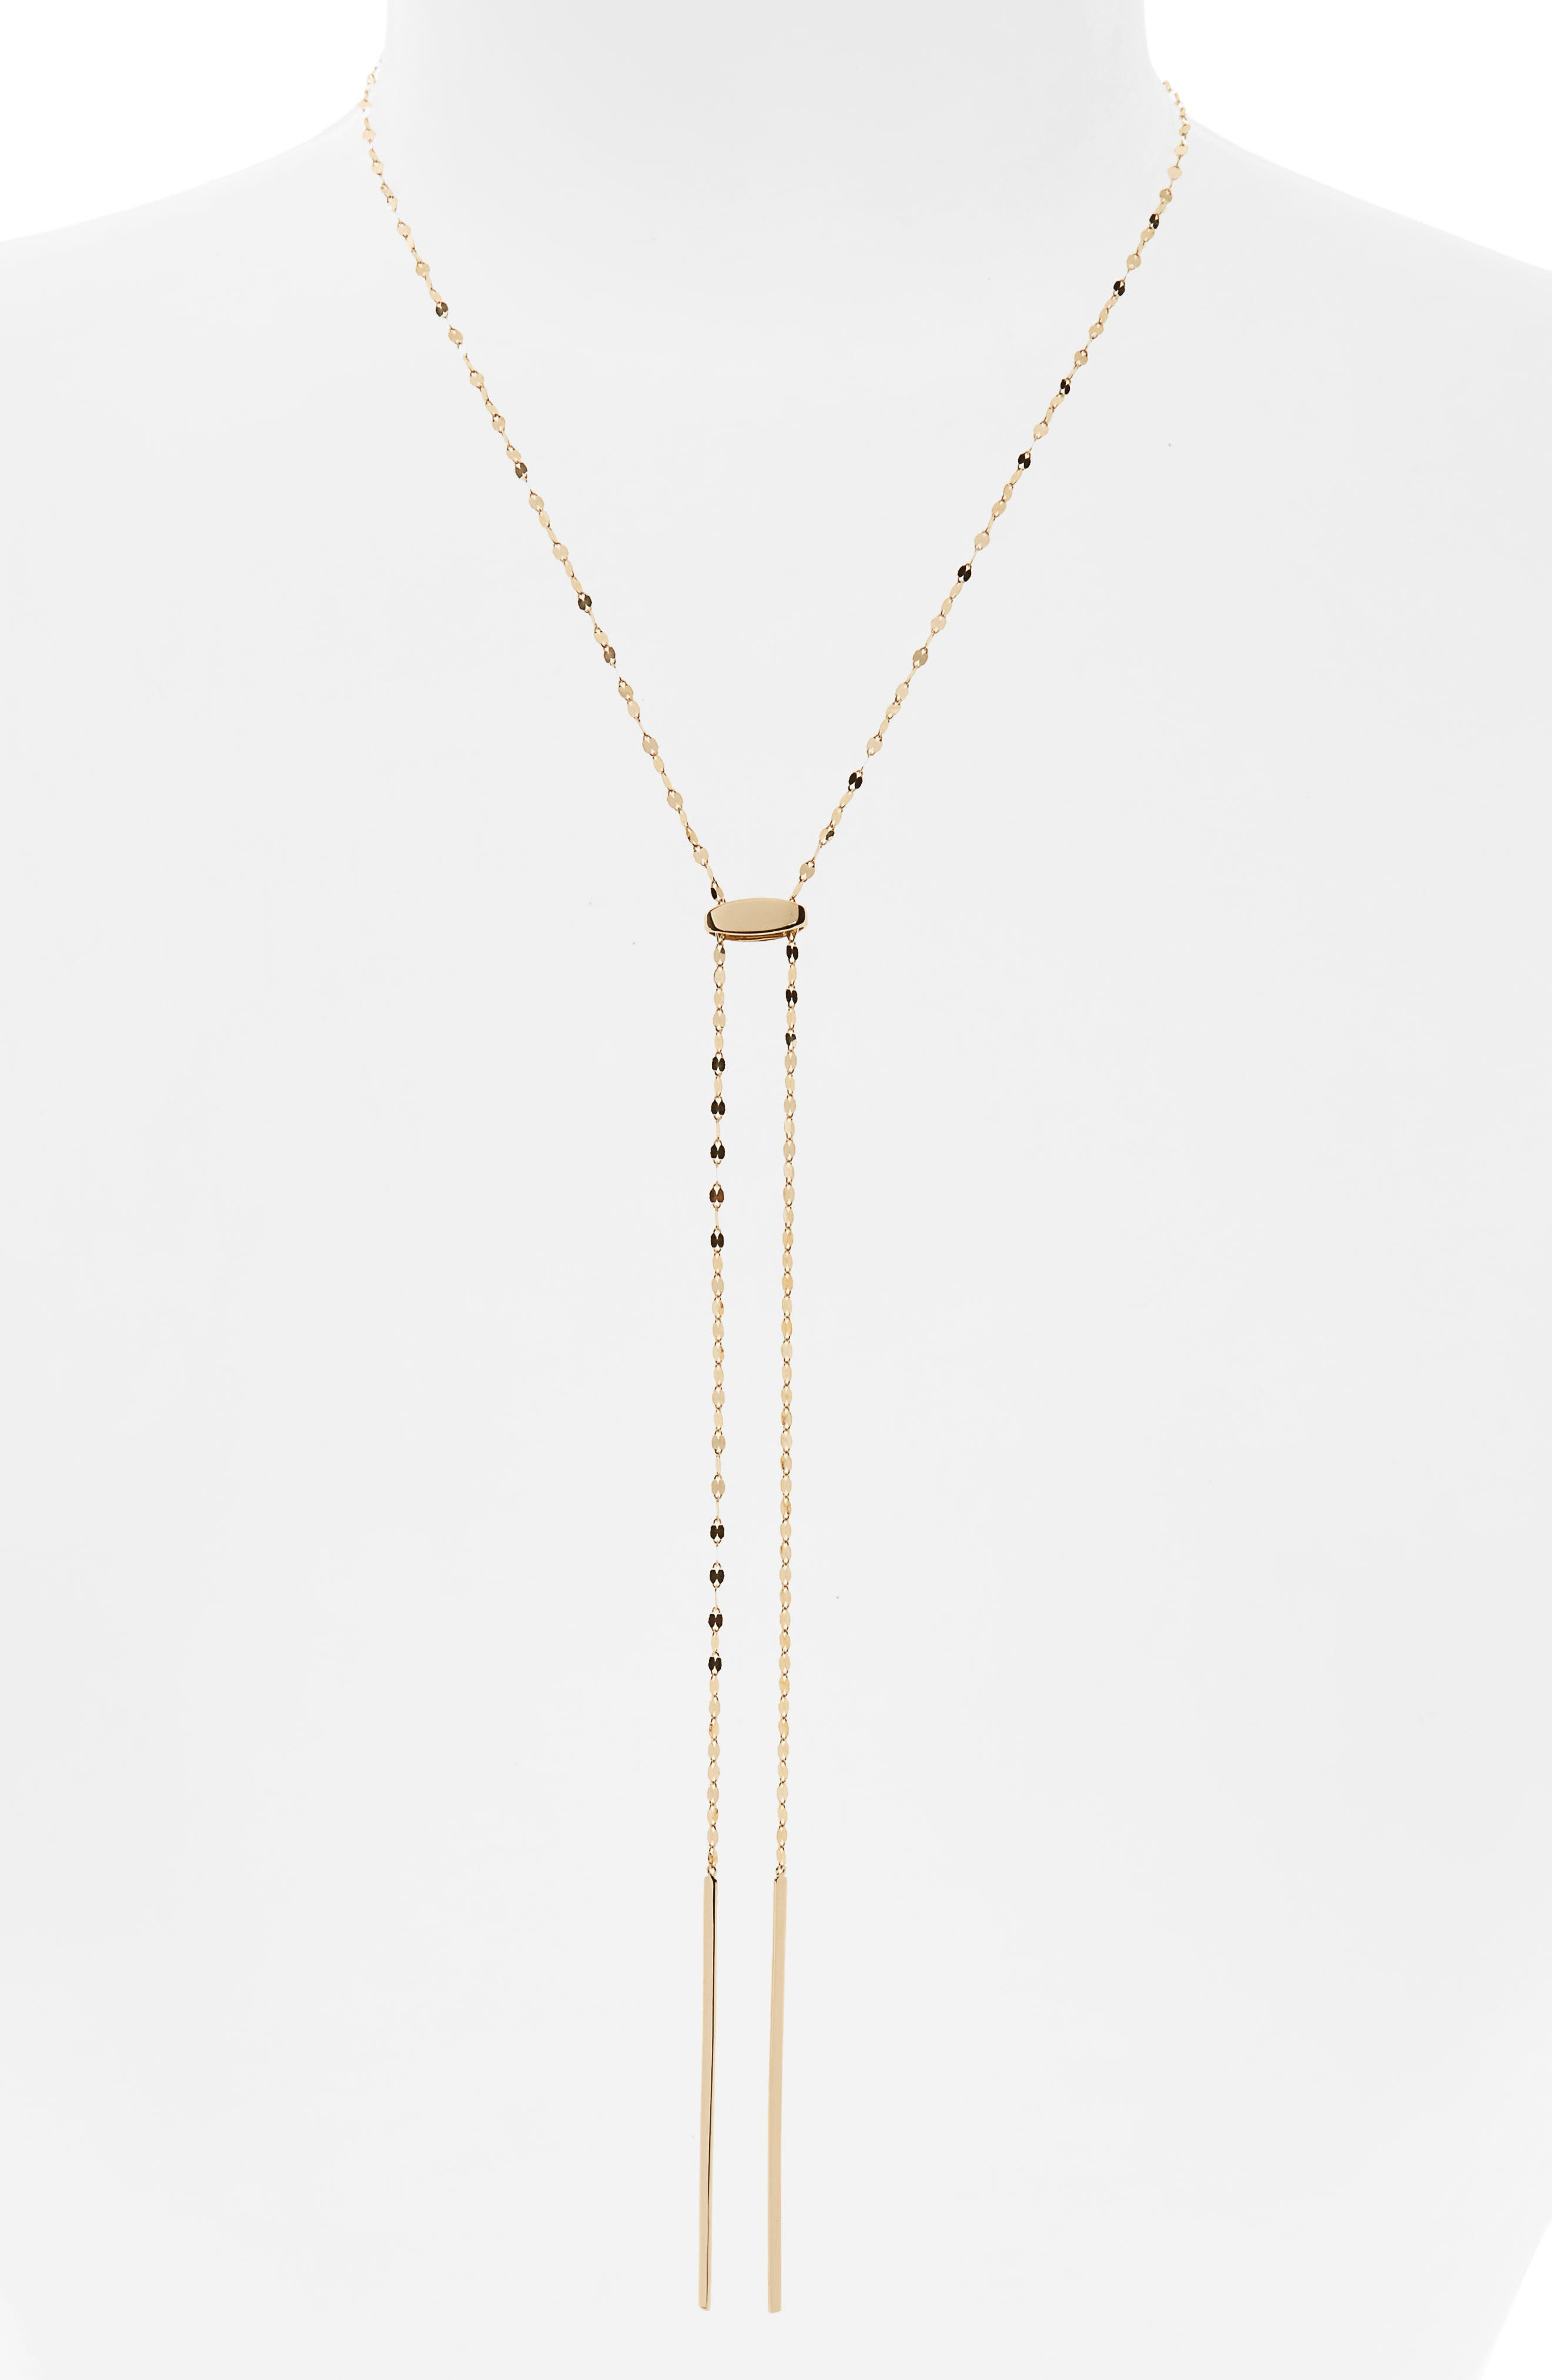 Blake Tie Up Lariat Necklace,                         Main,                         color, Yellow Gold